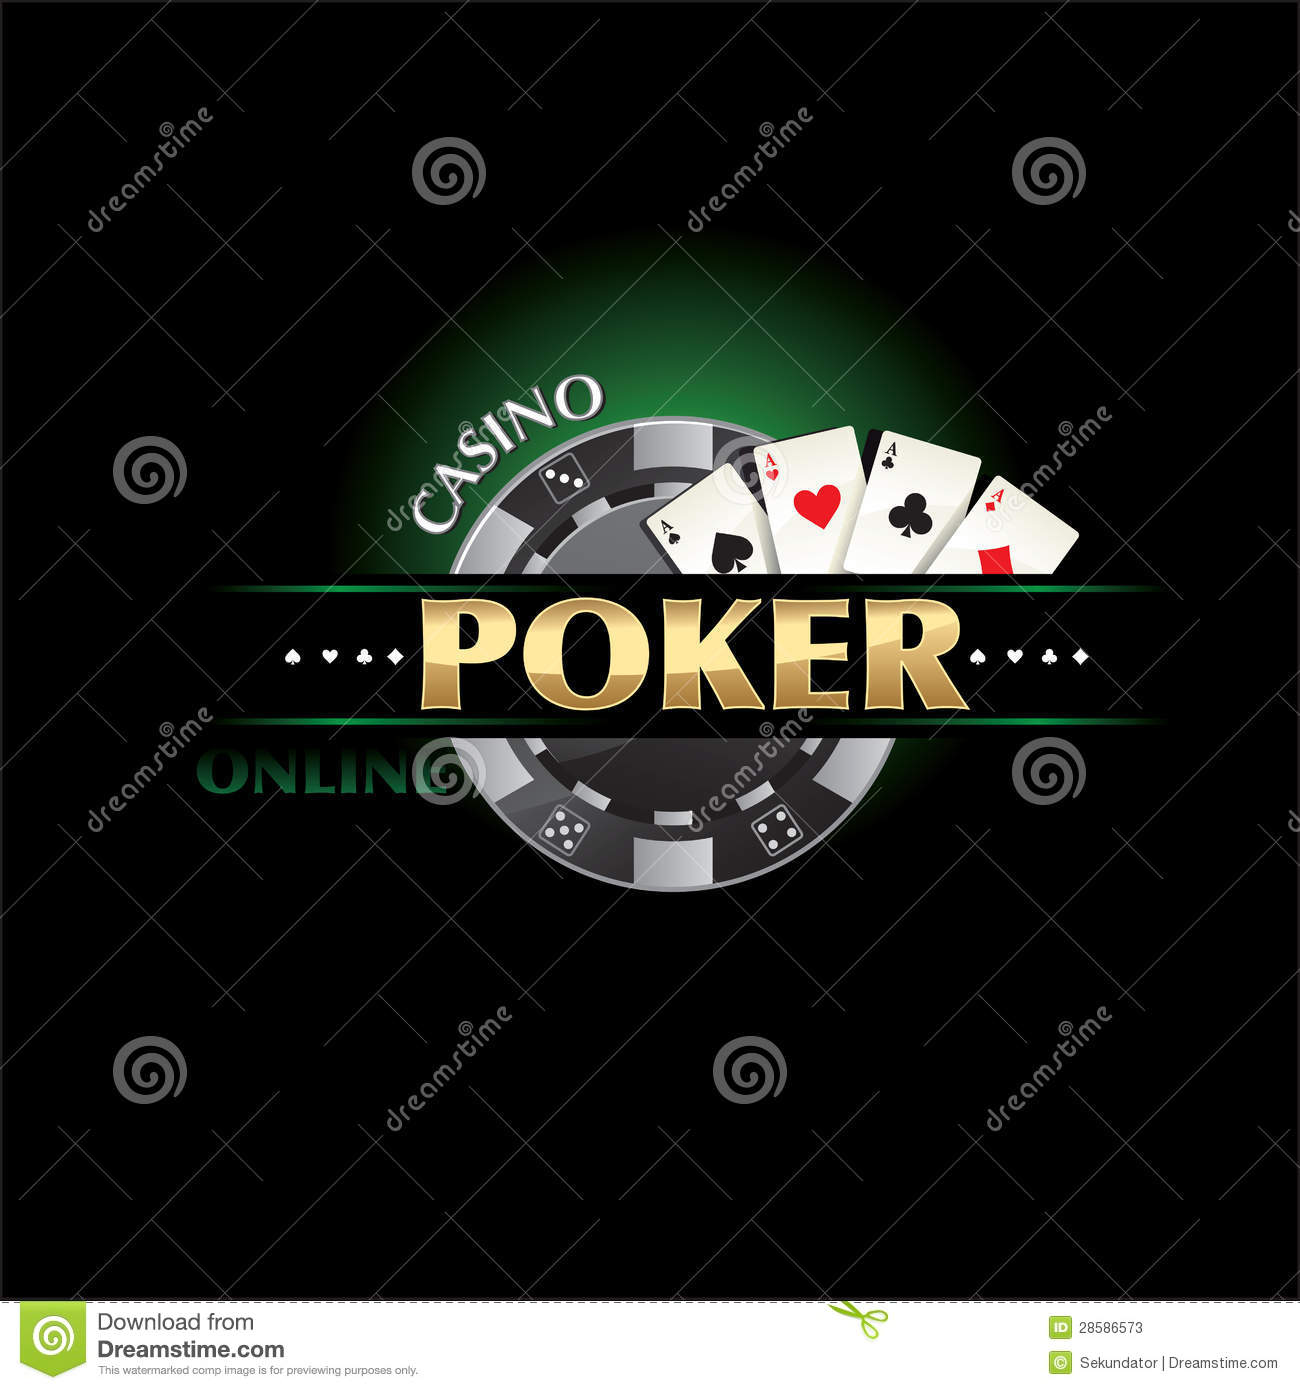 casino online poker casinoonline